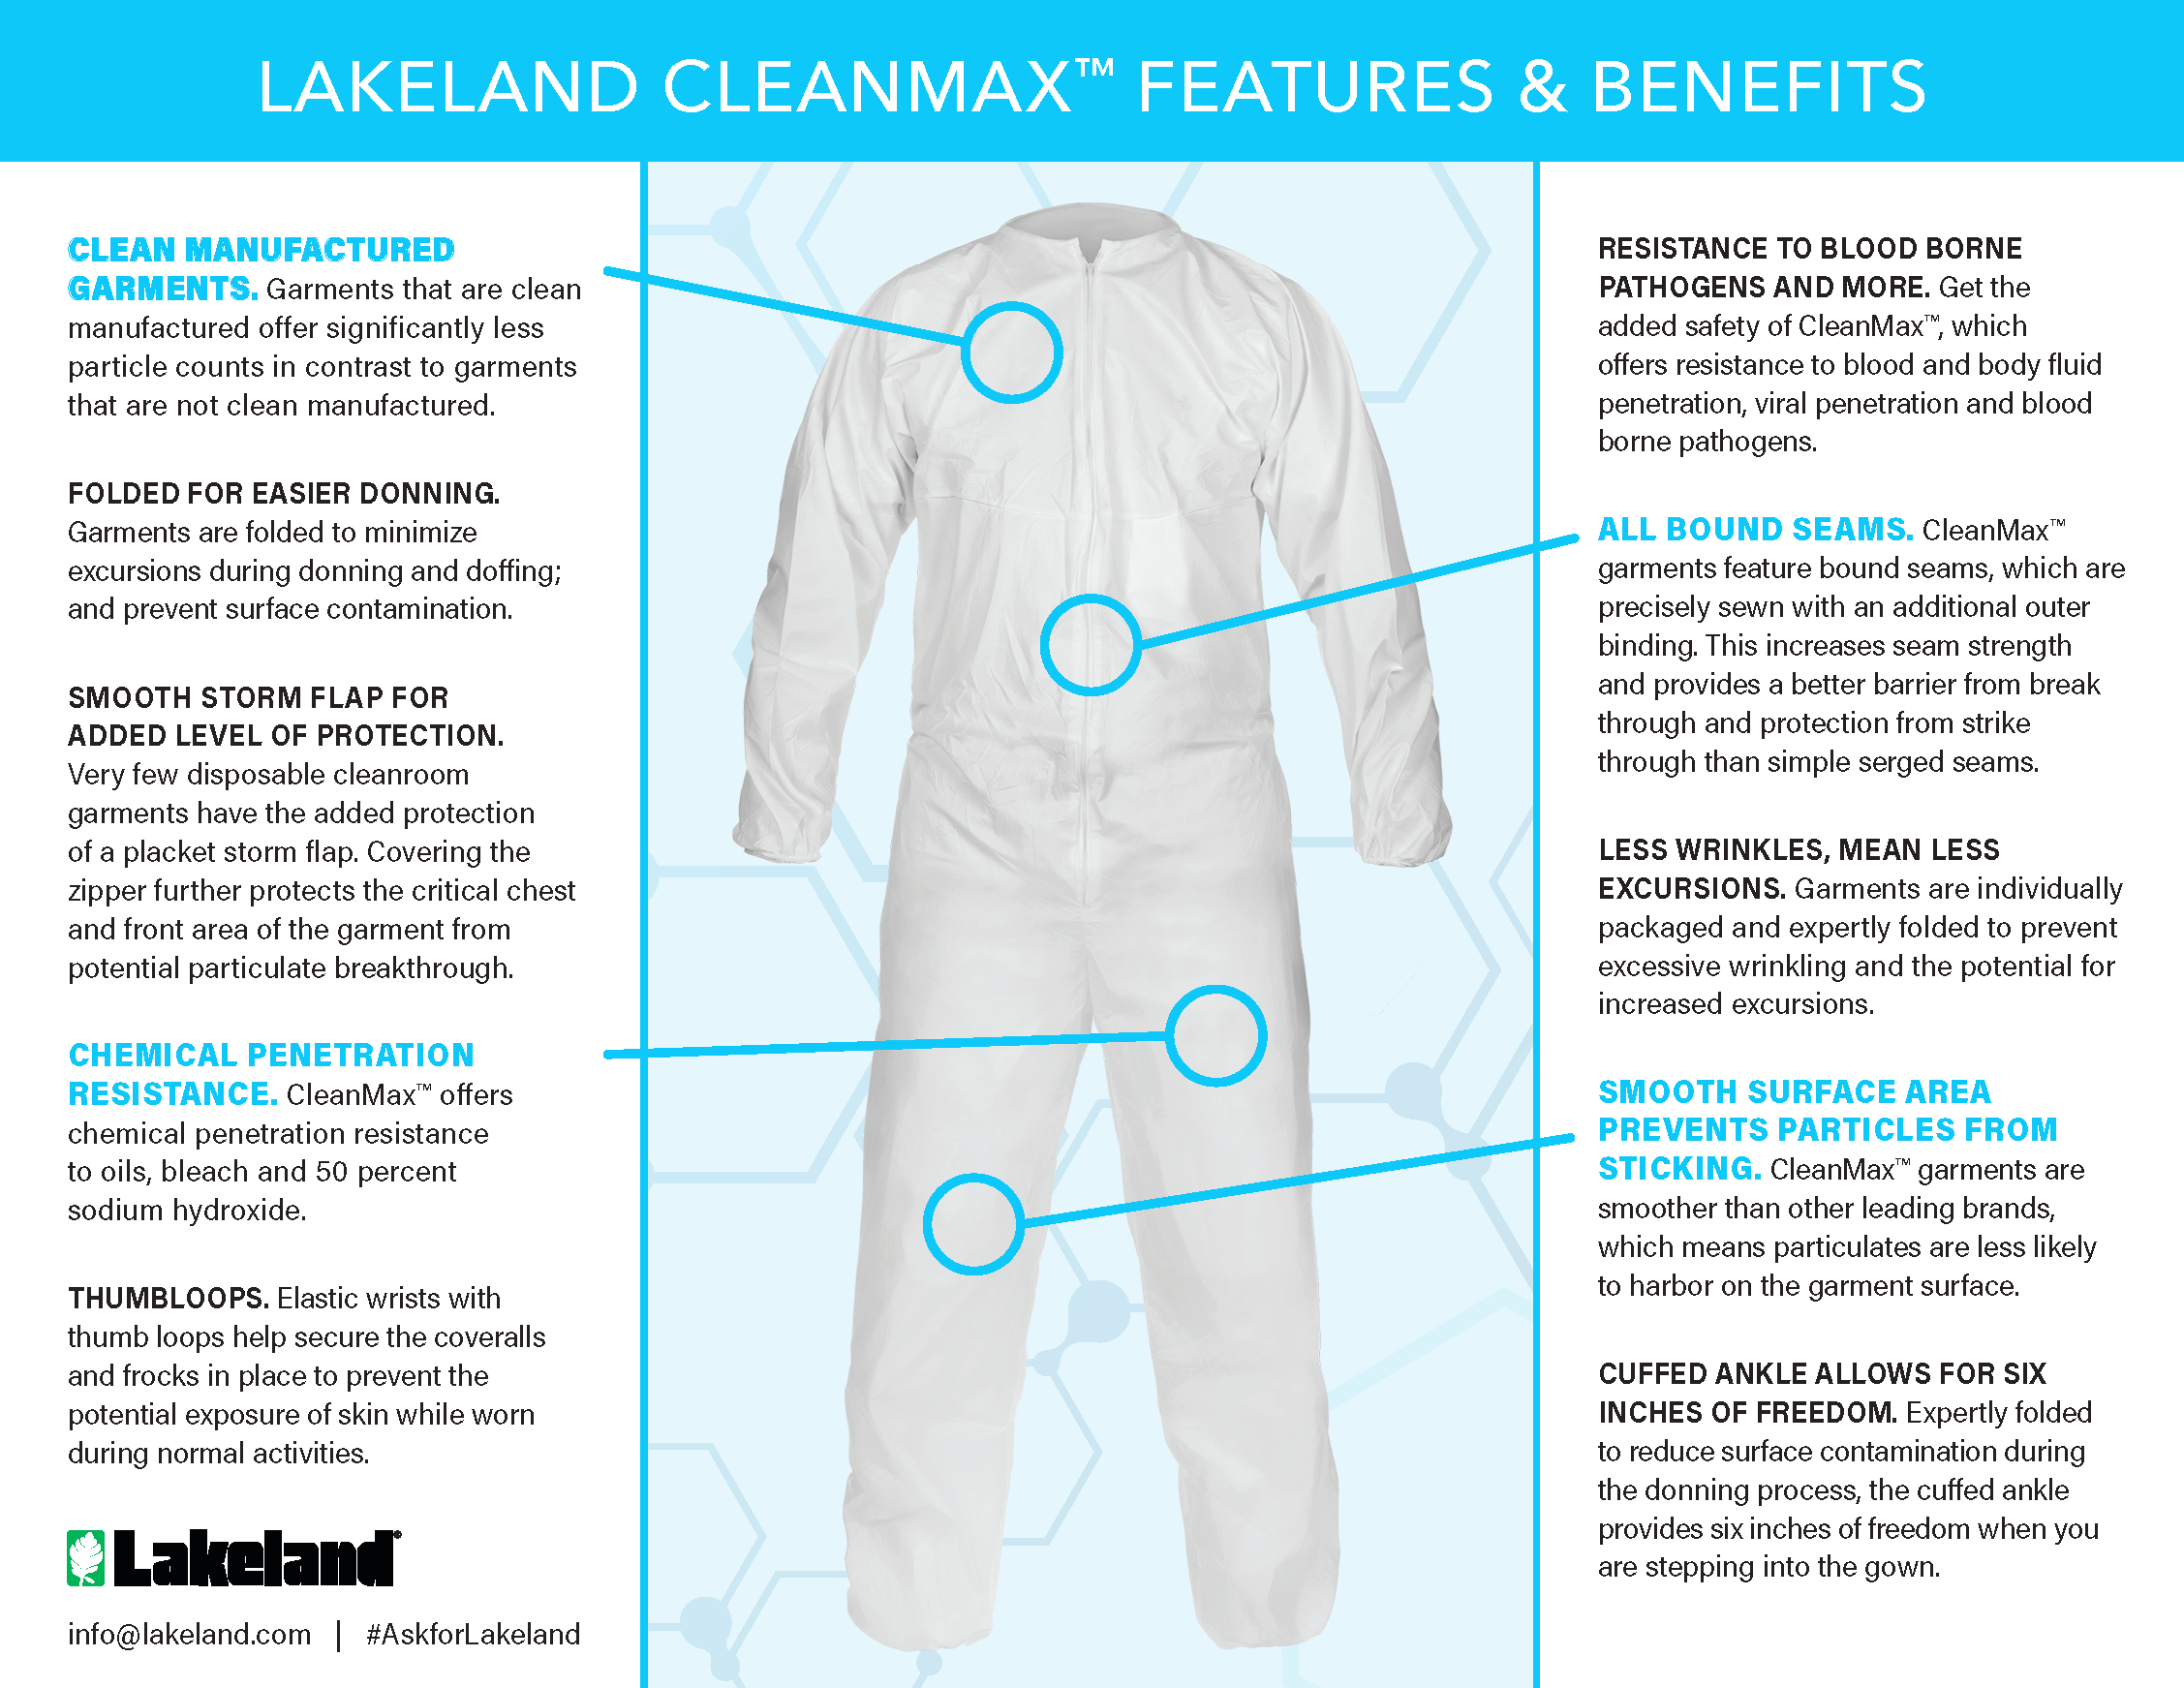 LAK-CleanMax-features.png